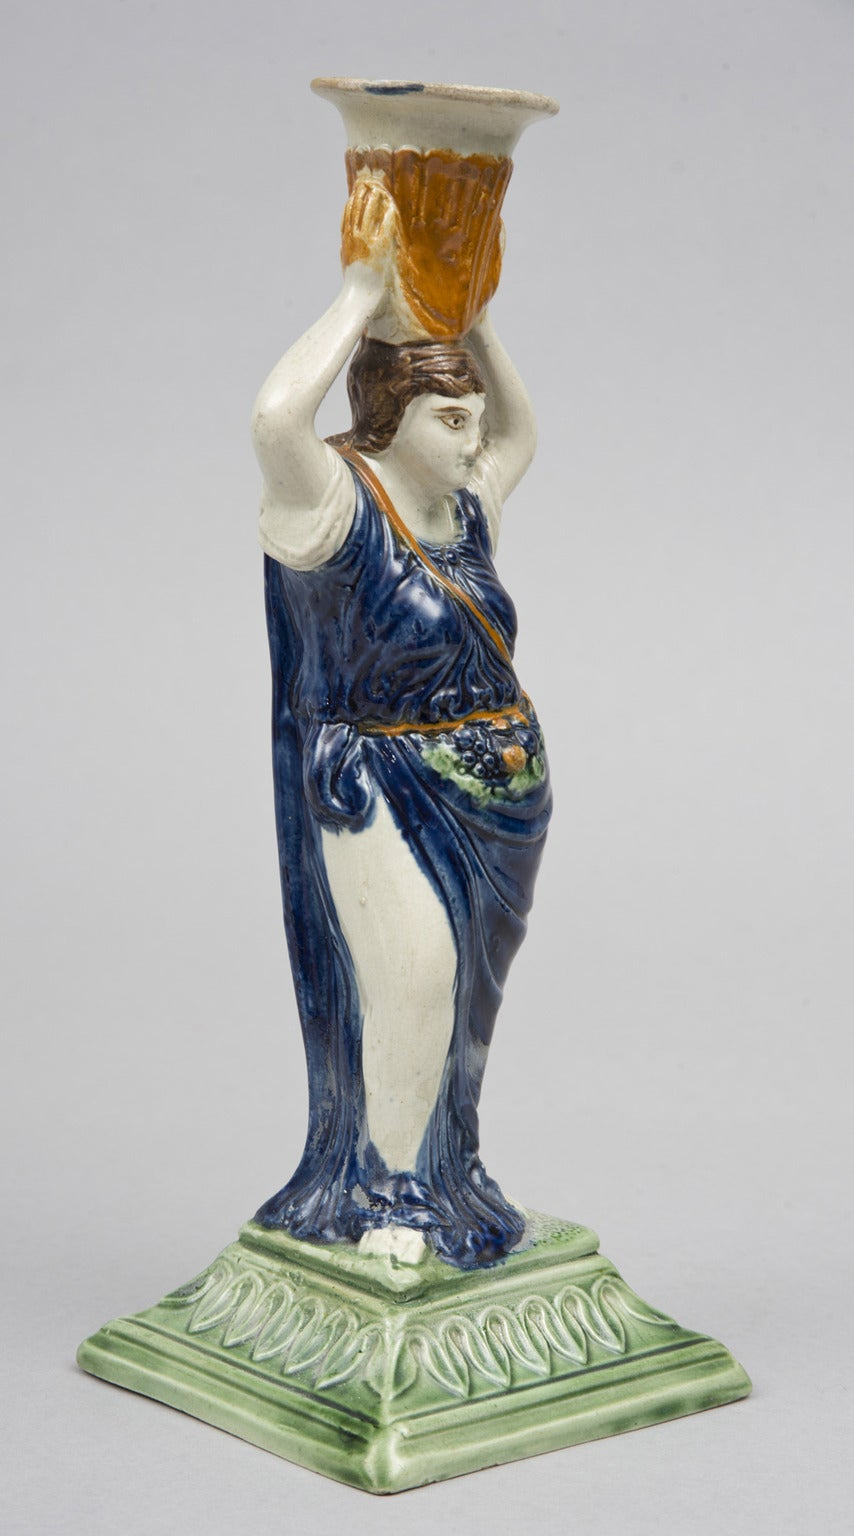 Prattware underglaze pottery candlestick of a classical female figure of summer wearing flowing blue drapery, carrying a pouch of fruit around her waist, holding an urn as a candle cup on her head, mounted on a green tapered square base decorated